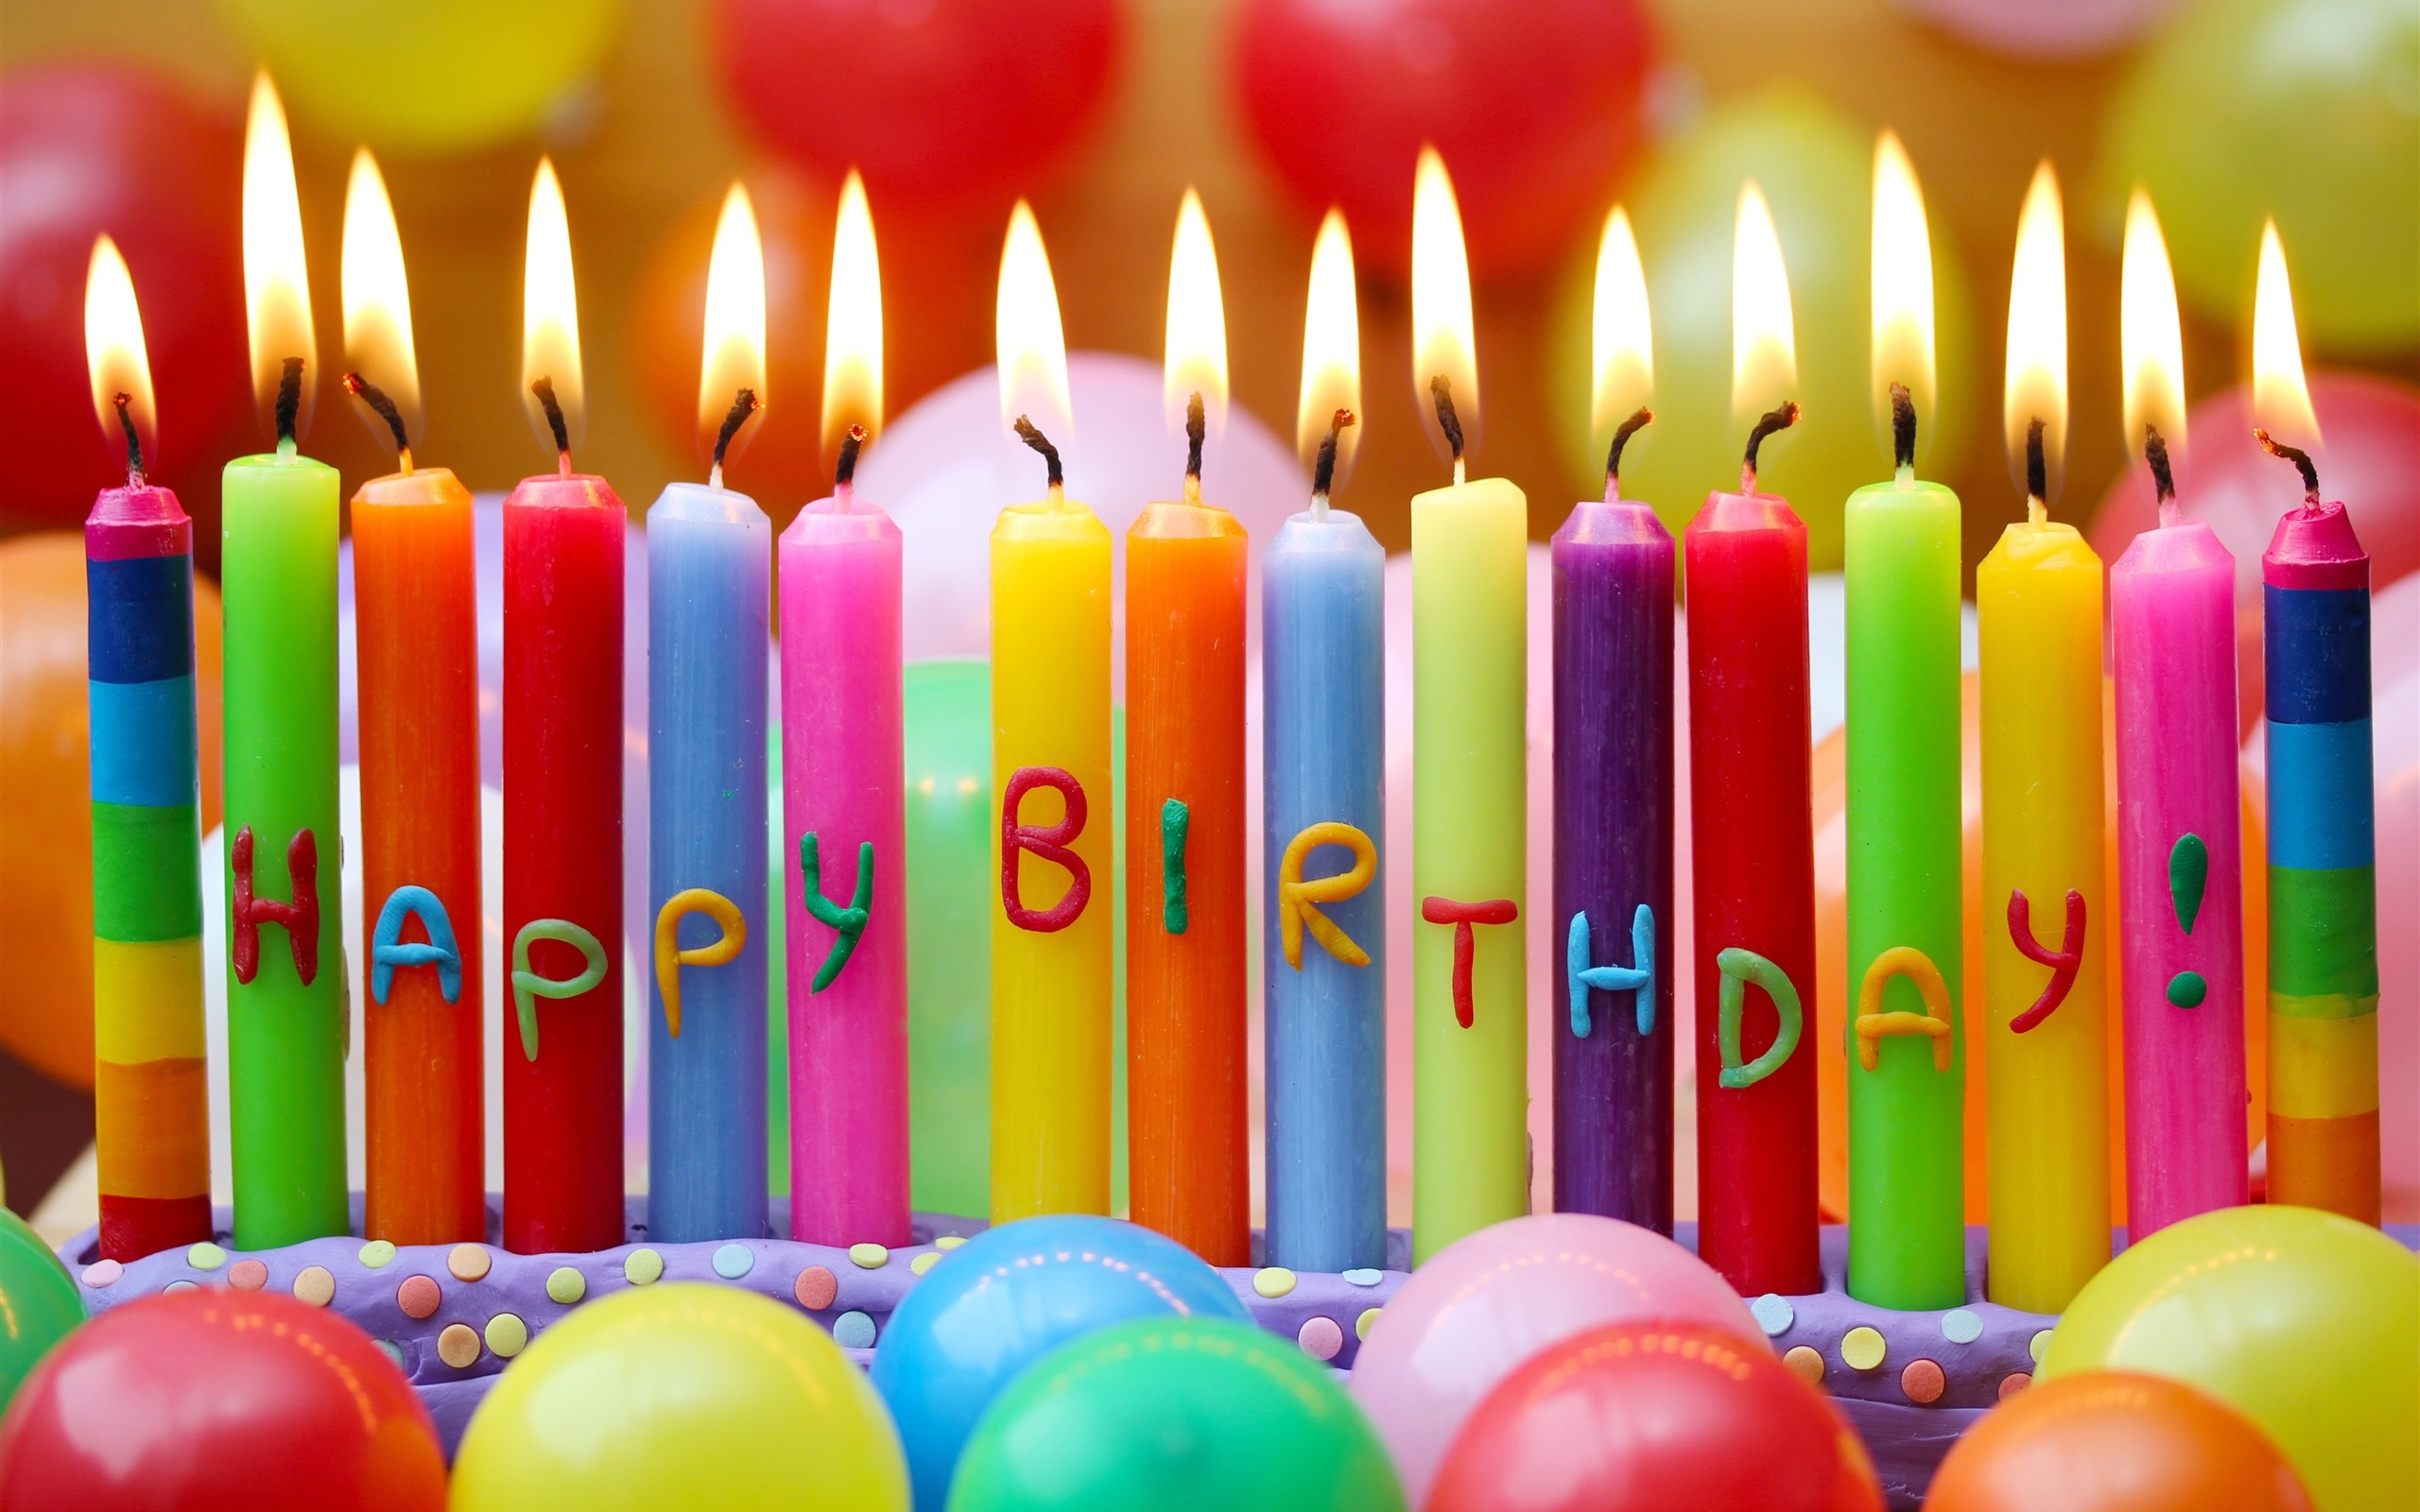 Wallpaper happy birthday colorful candles balloons - Zedge happy birthday wallpapers ...